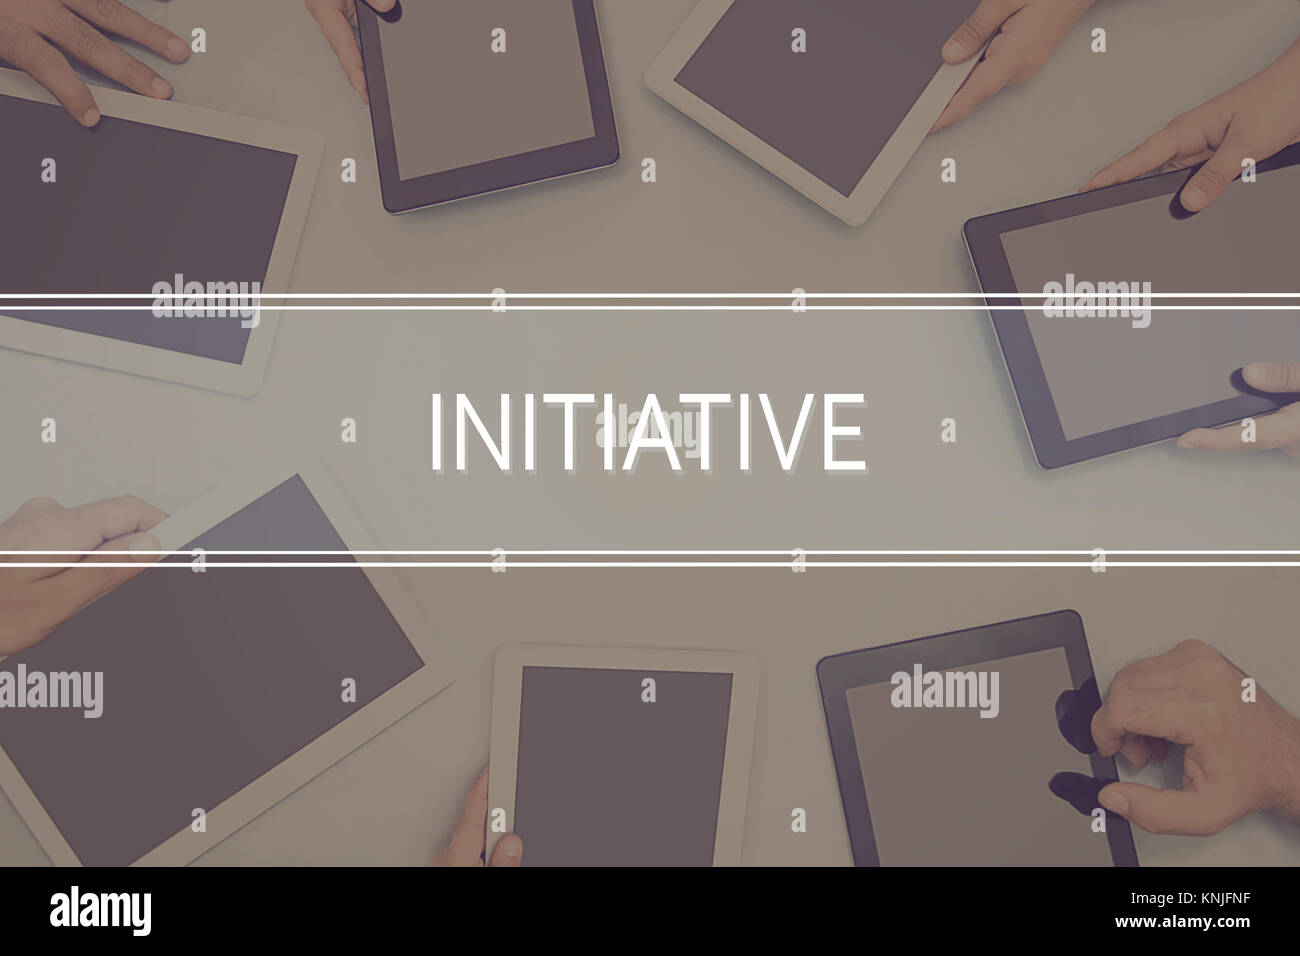 INITIATIVE CONCEPT Business Concept. - Stock Image